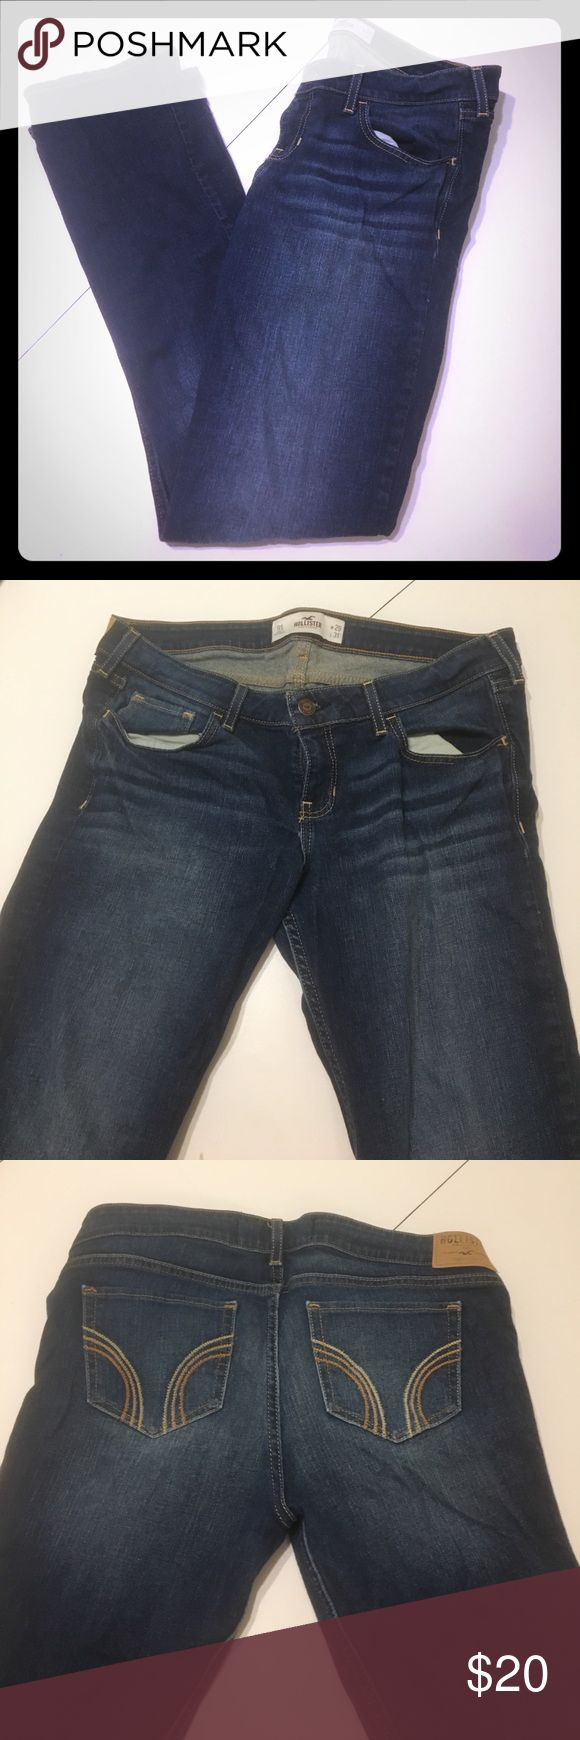 Boot cut dark wash jeans Hollister boot cut jeans. They are tighter in the thigh area for a trimming fitted look but flare out at the bottom perfect for boot wearing. A dark blue wash. No distressing. Quality is like new. Hollister Jeans Boot Cut